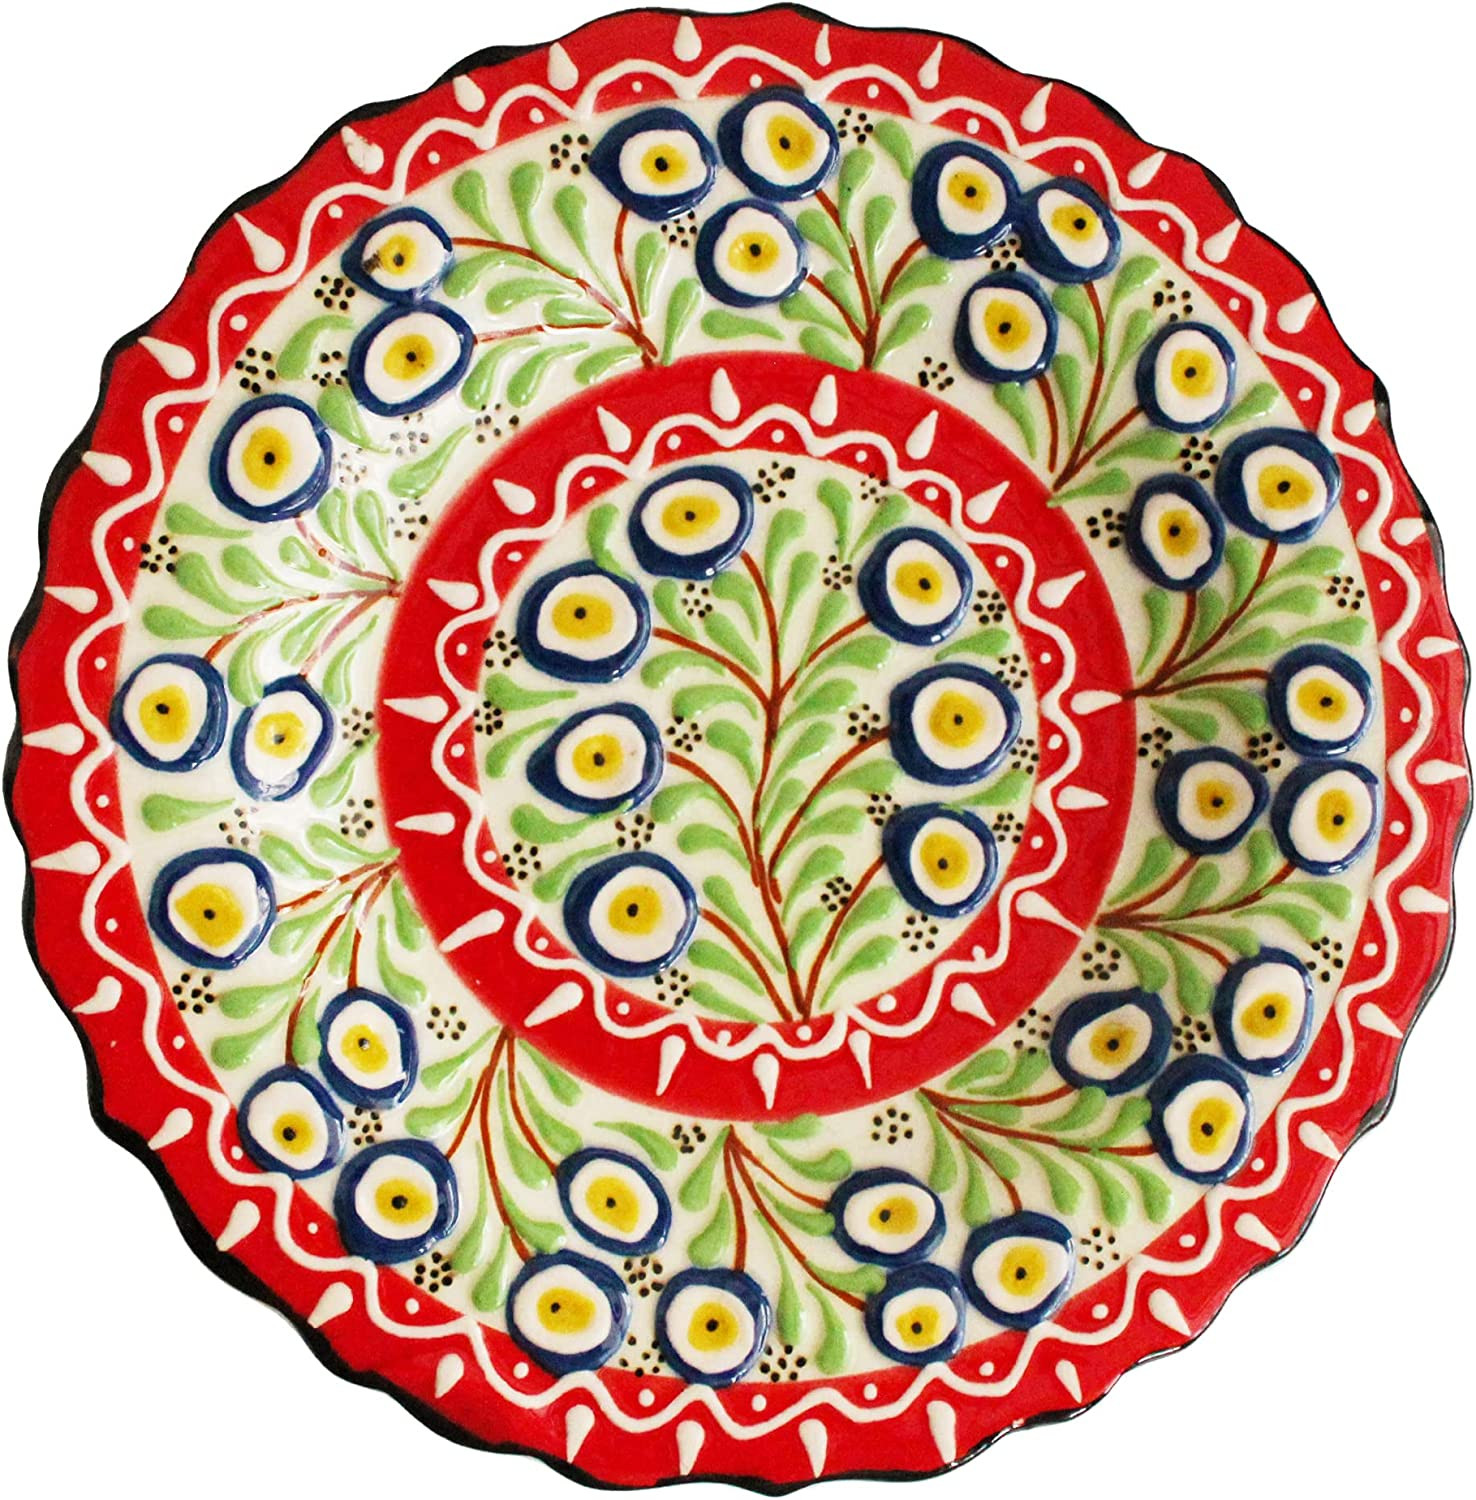 Turkish Traditional Handmade Decorative Plate - 7.08'' (18cm) - Multi Colorful Ceramic Ornament for Your Home & Offfice & Kitchen - Tree in Blue Evil Eyes Design - Mixed Multicolored